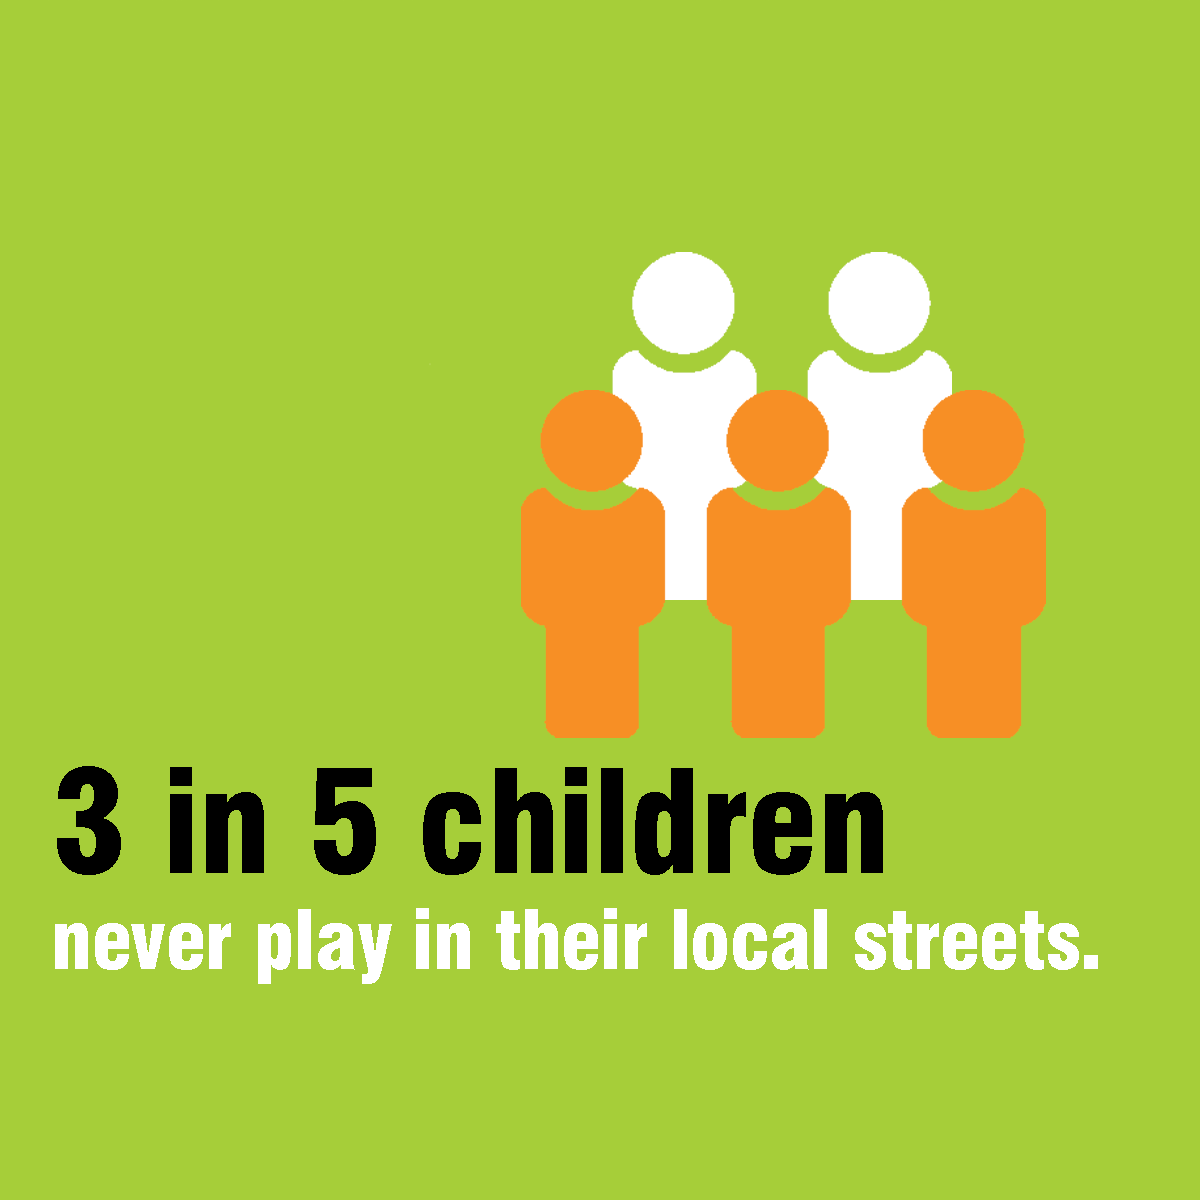 3 in 5 children never play local streets